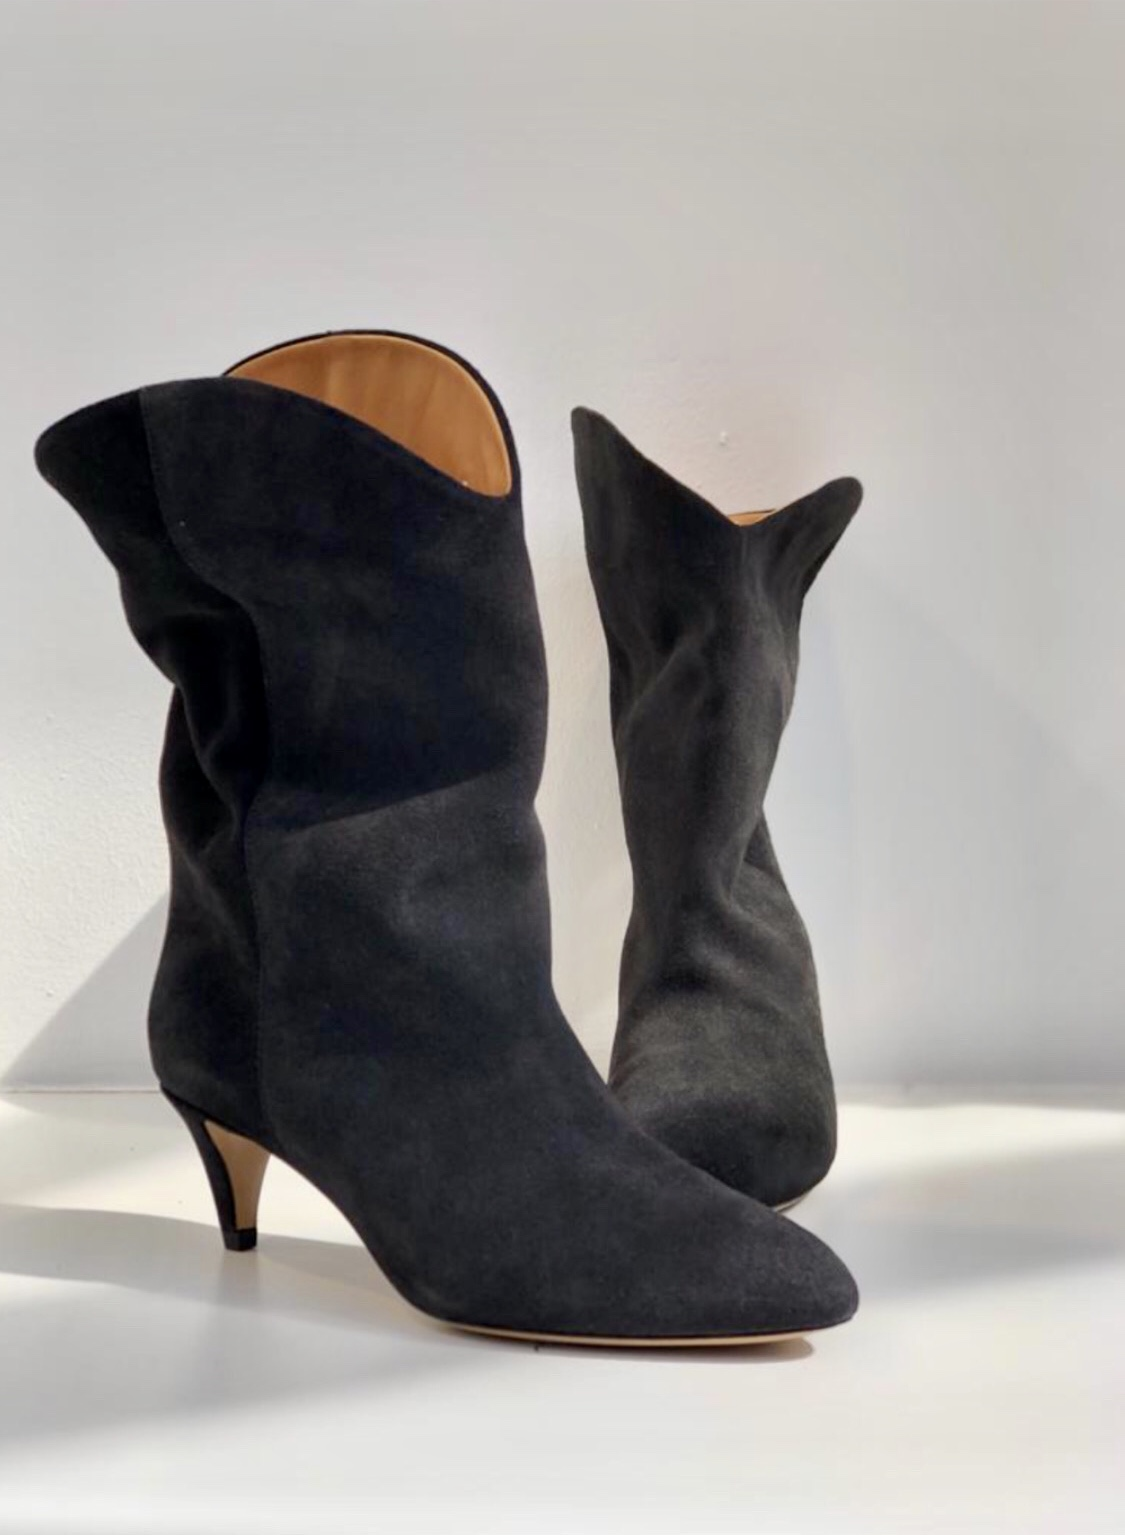 Isabel Marant, Dernee Boots, Stiefel